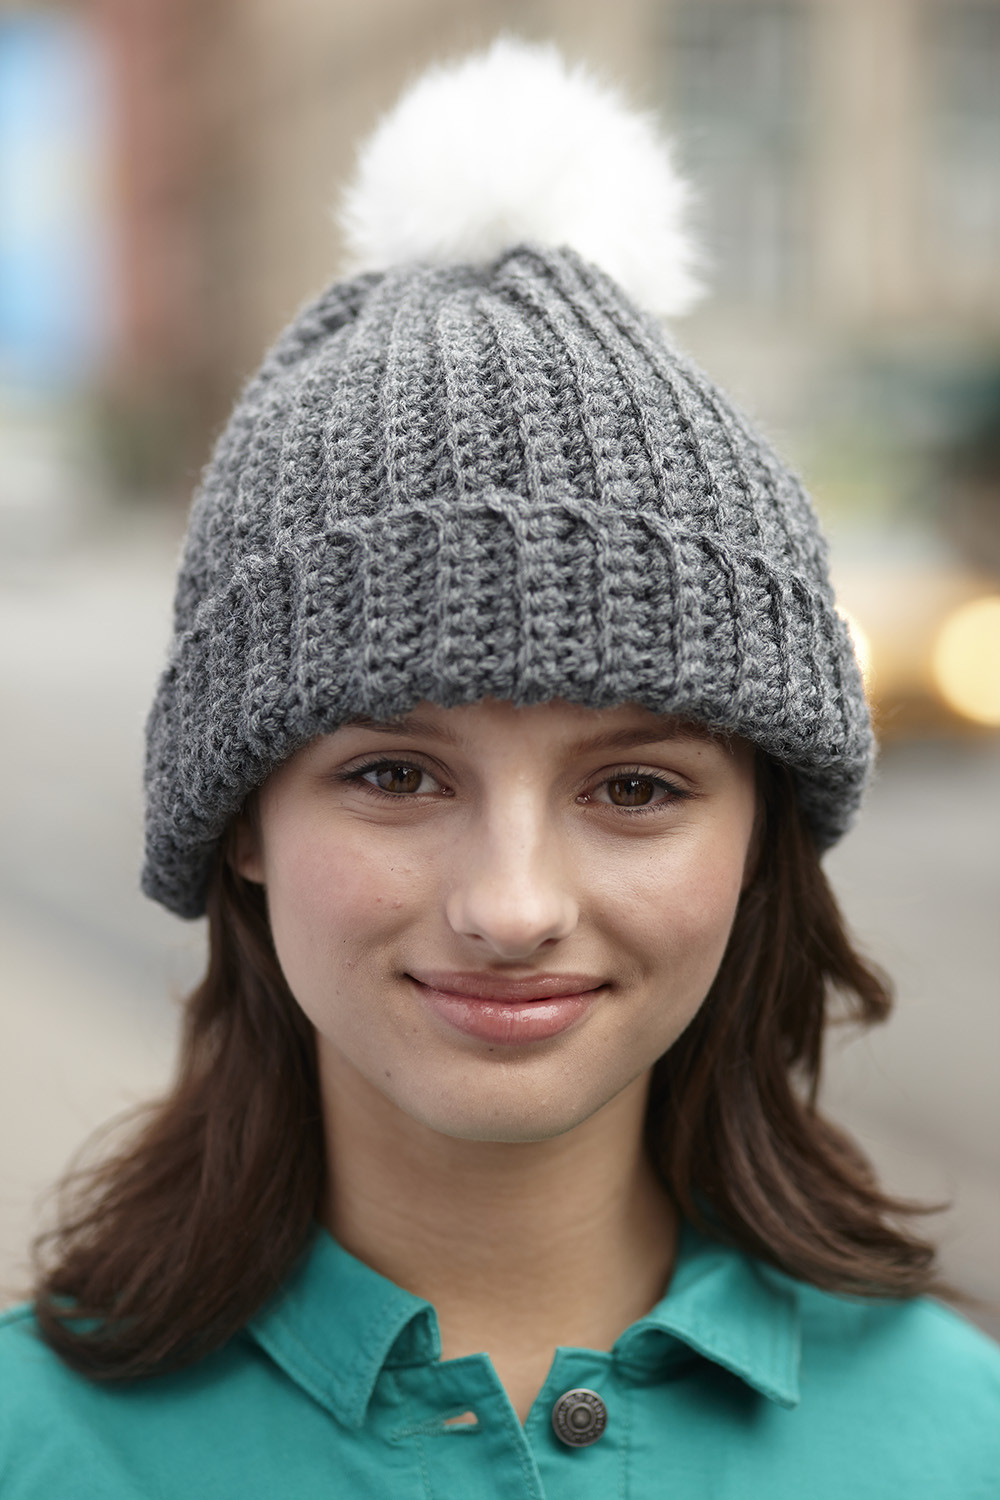 Free Crochet Hat Patterns Inspirational Free Crochet Patterns for Adult Hats Of Superb 50 Ideas Free Crochet Hat Patterns